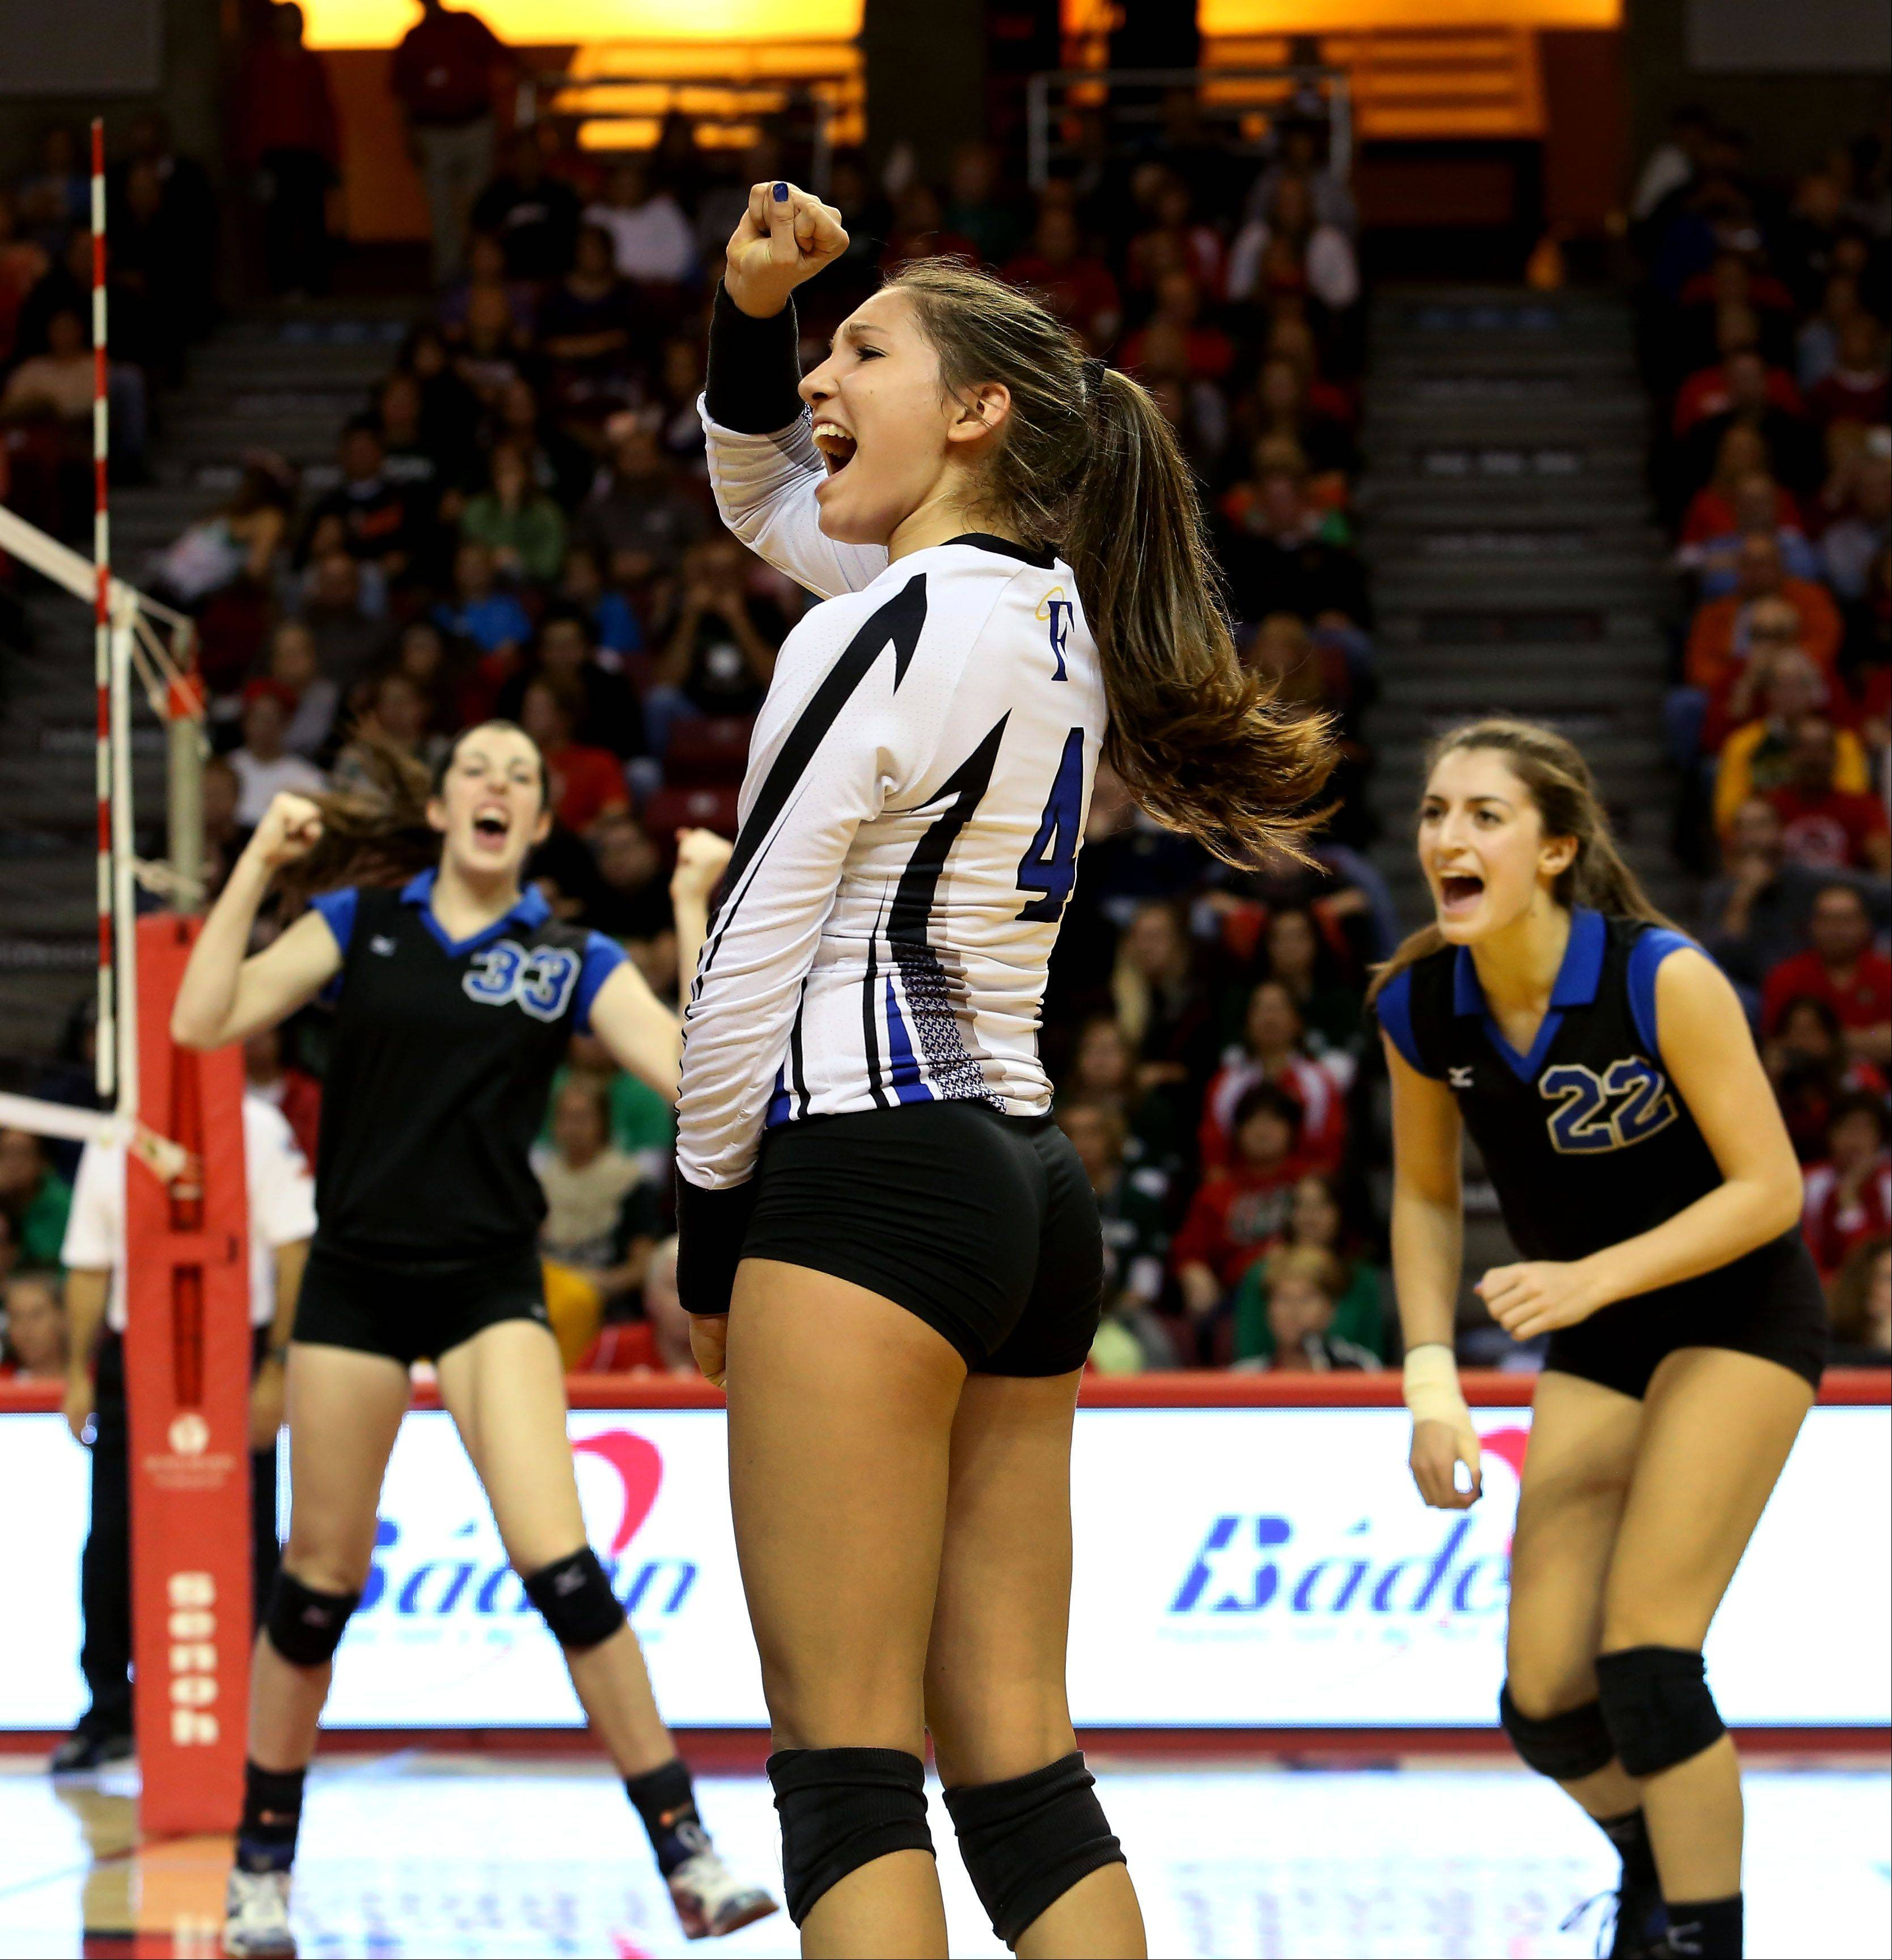 Sam Dubiel and her St. Francis teammates celebrate a point won over LaSalle-Peru in the Class 3A championship girls volleyball match on Saturday in Normal.